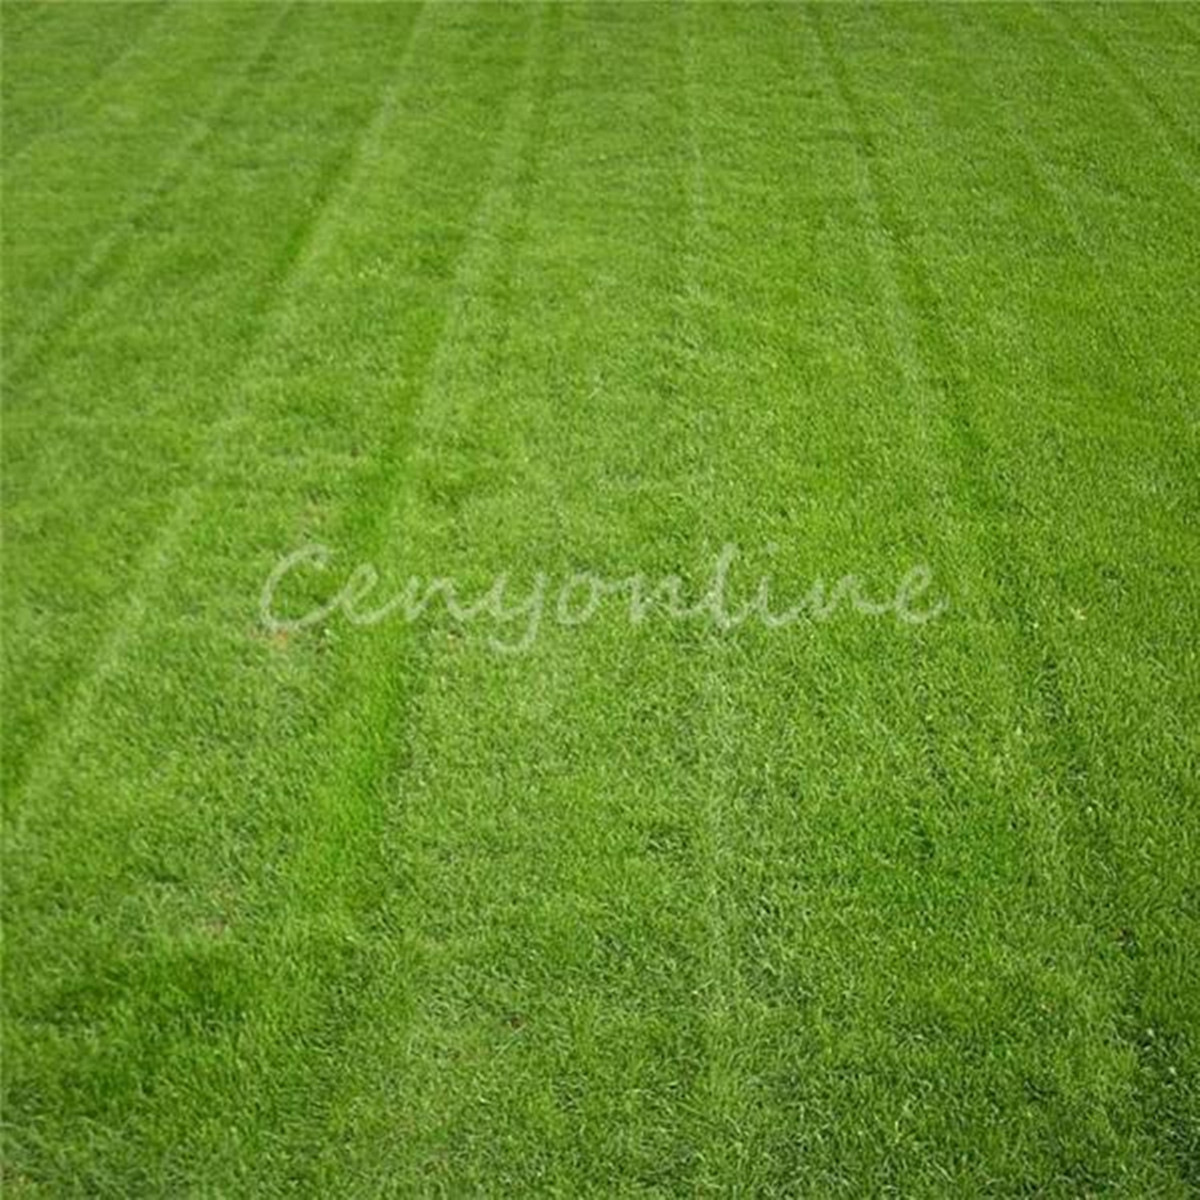 10000x tall fescue grass seeds festuca arundinacea lawn for Decorative lawn grass